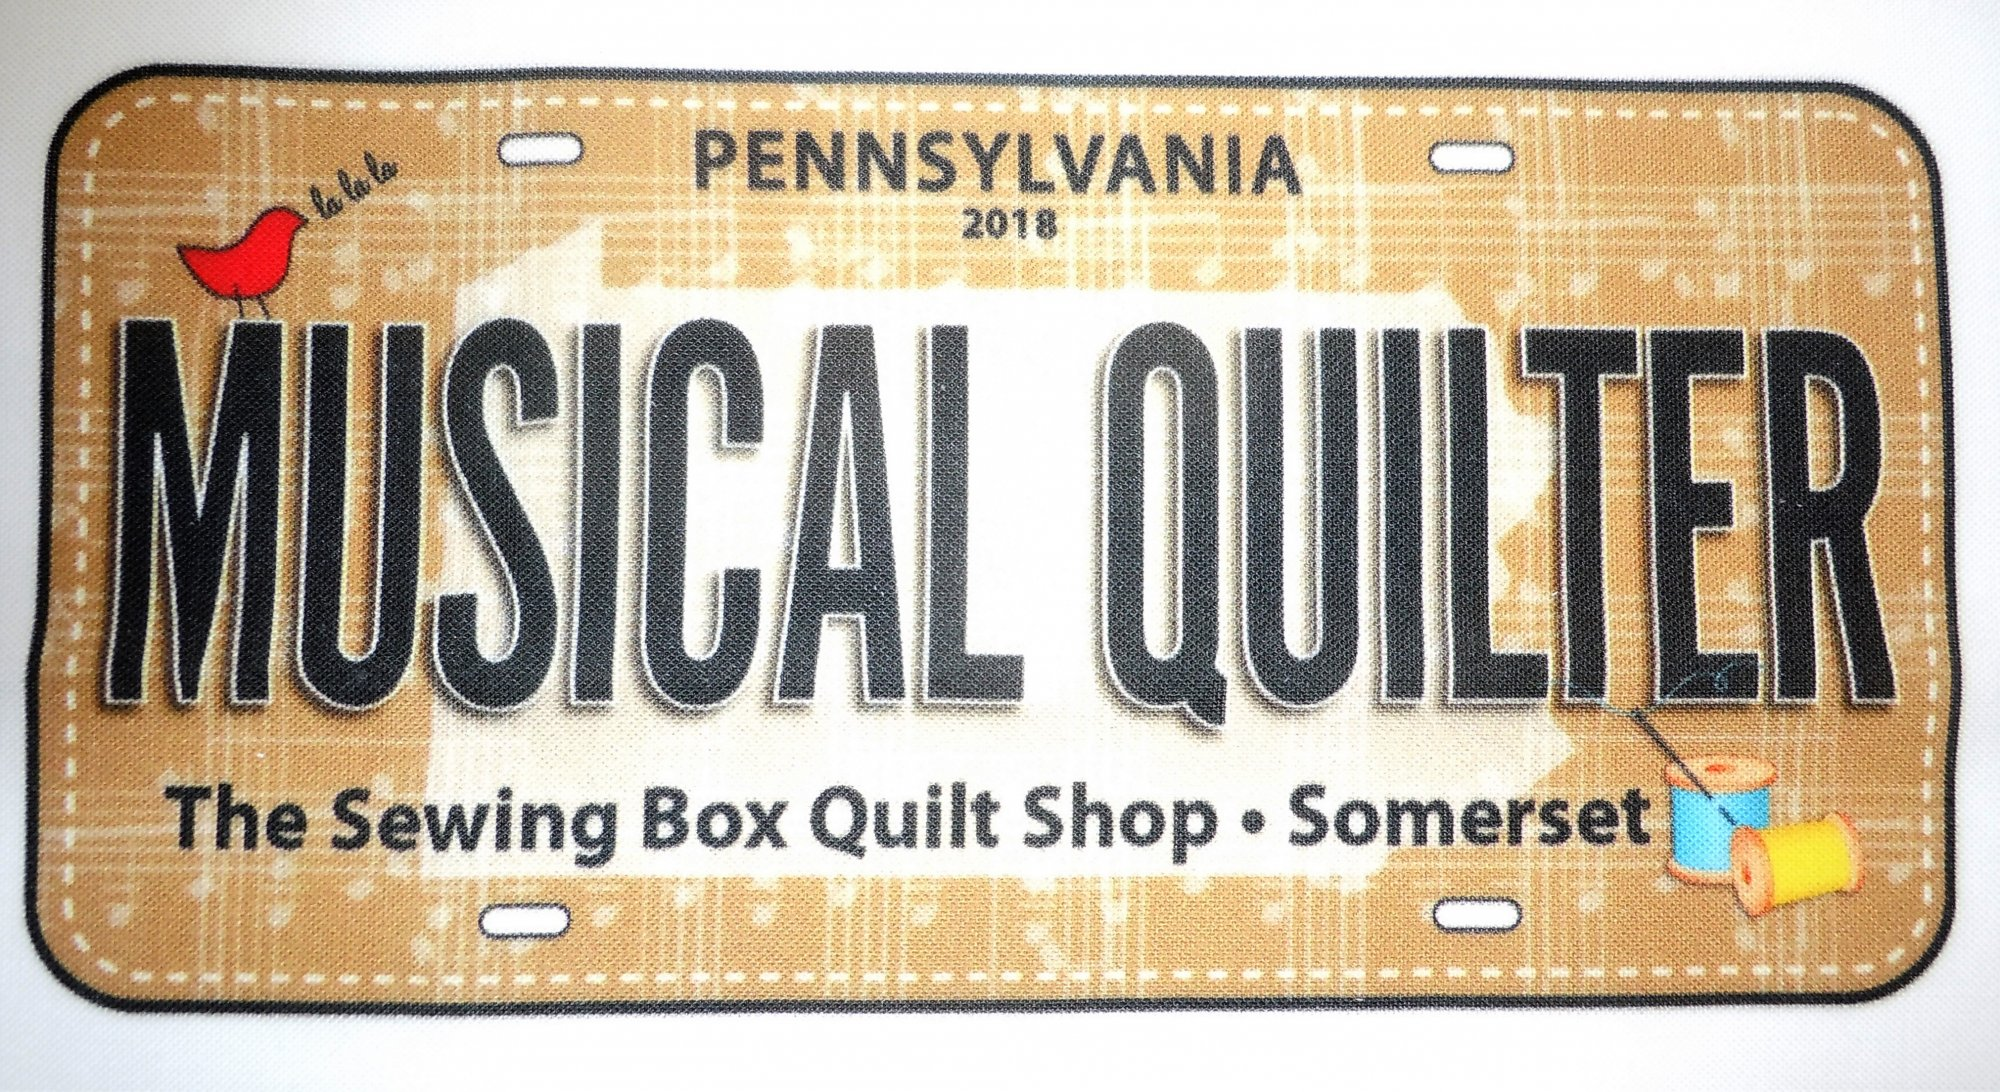 License Plate-Fabric RXR Musical Quilter